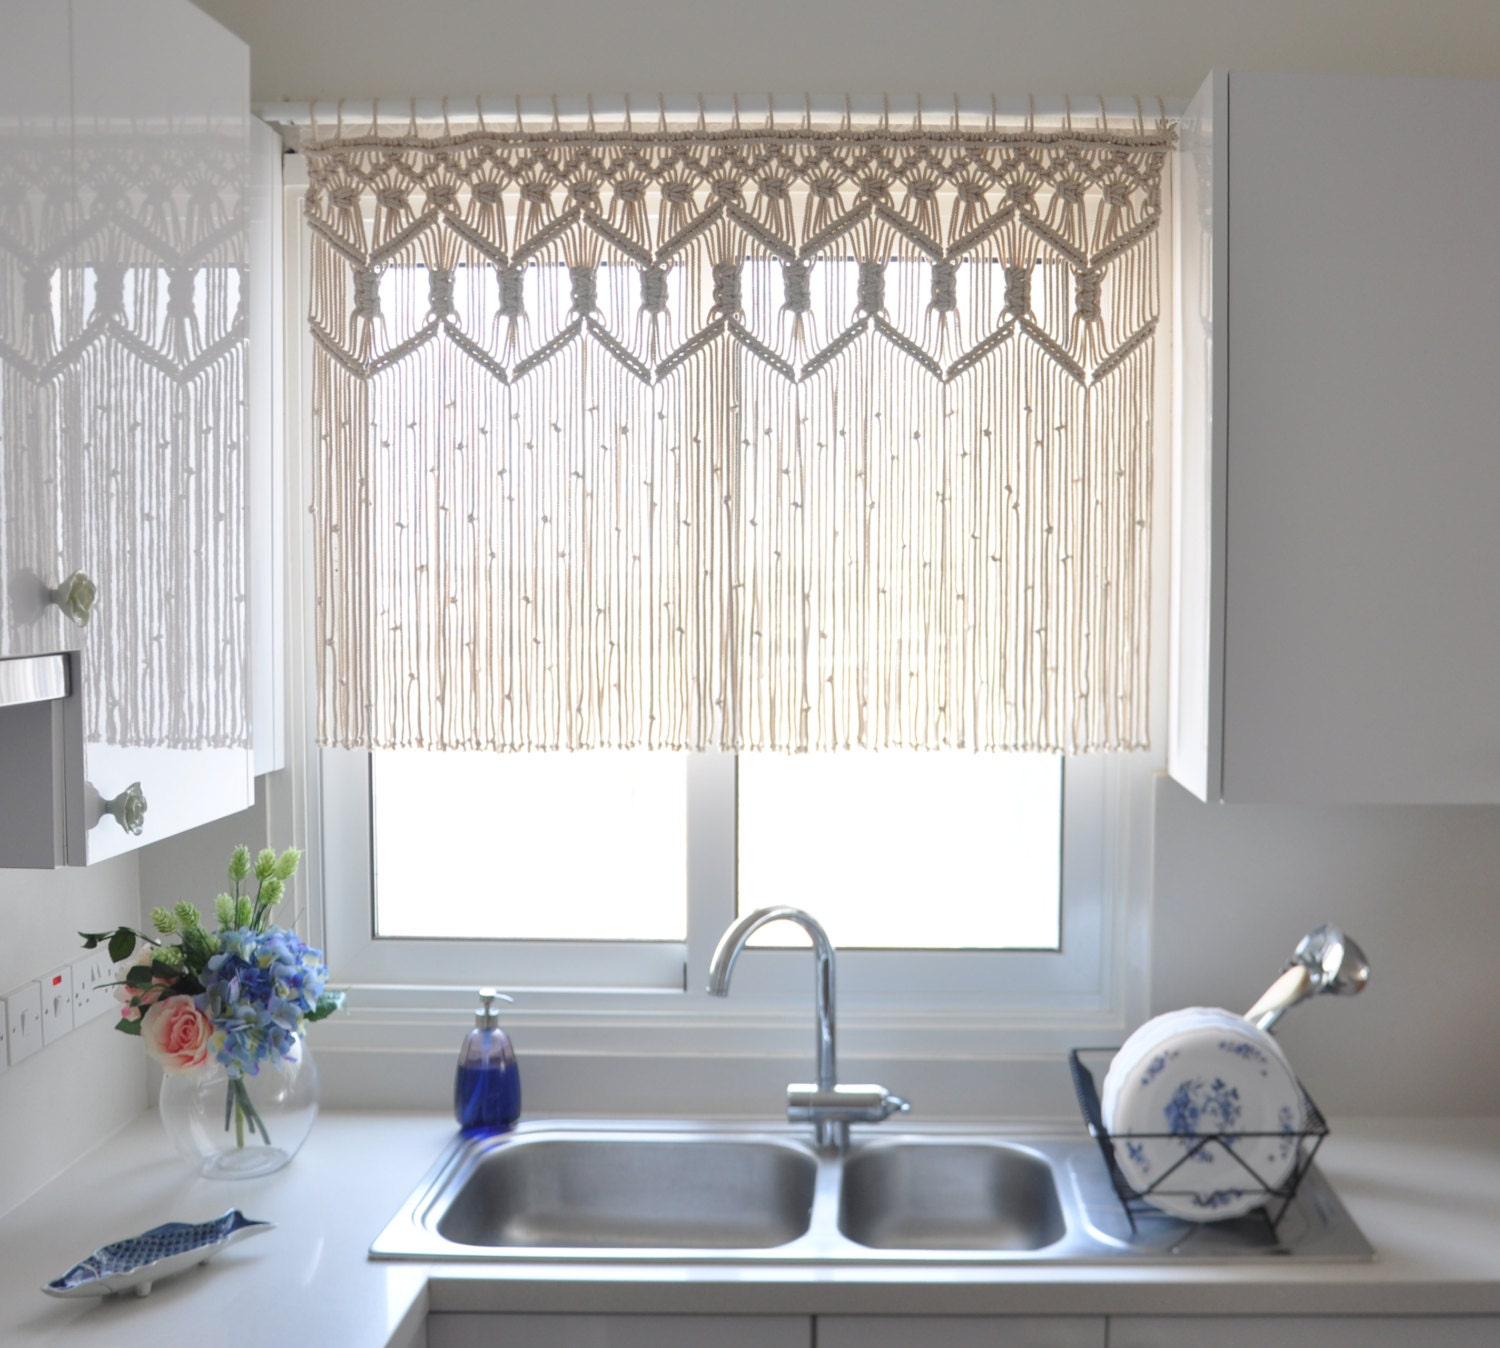 Lace Kitchen Curtains Uk - Best Kitchen Design and Inspiration